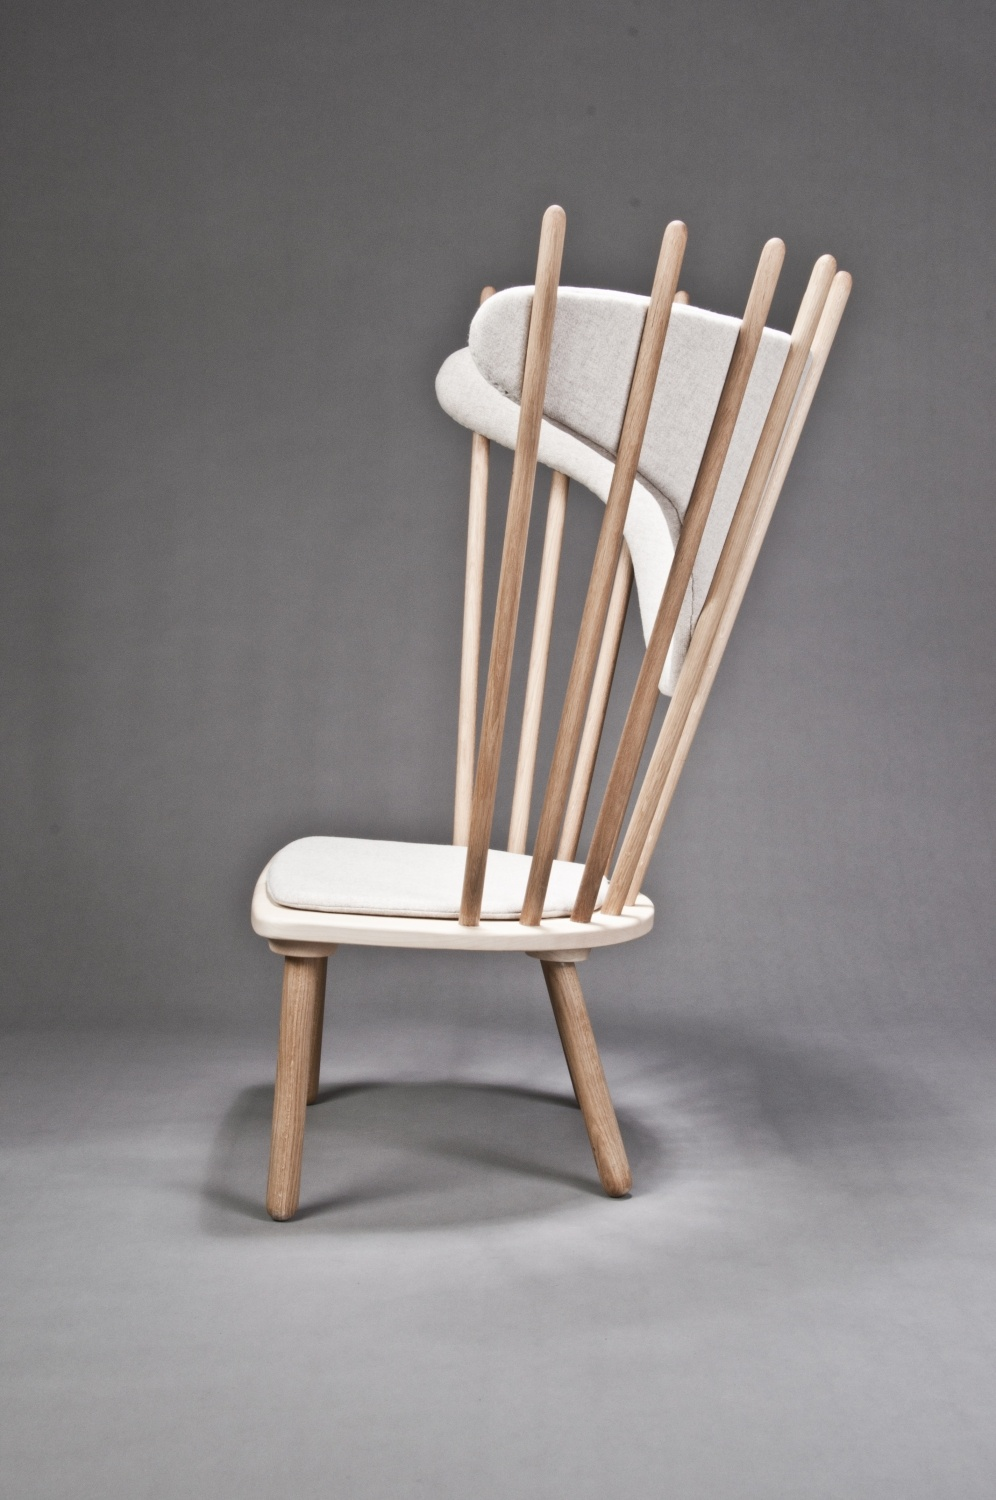 FLODEAU.COM - Sticks Armchair by Celina Rolmar - 02